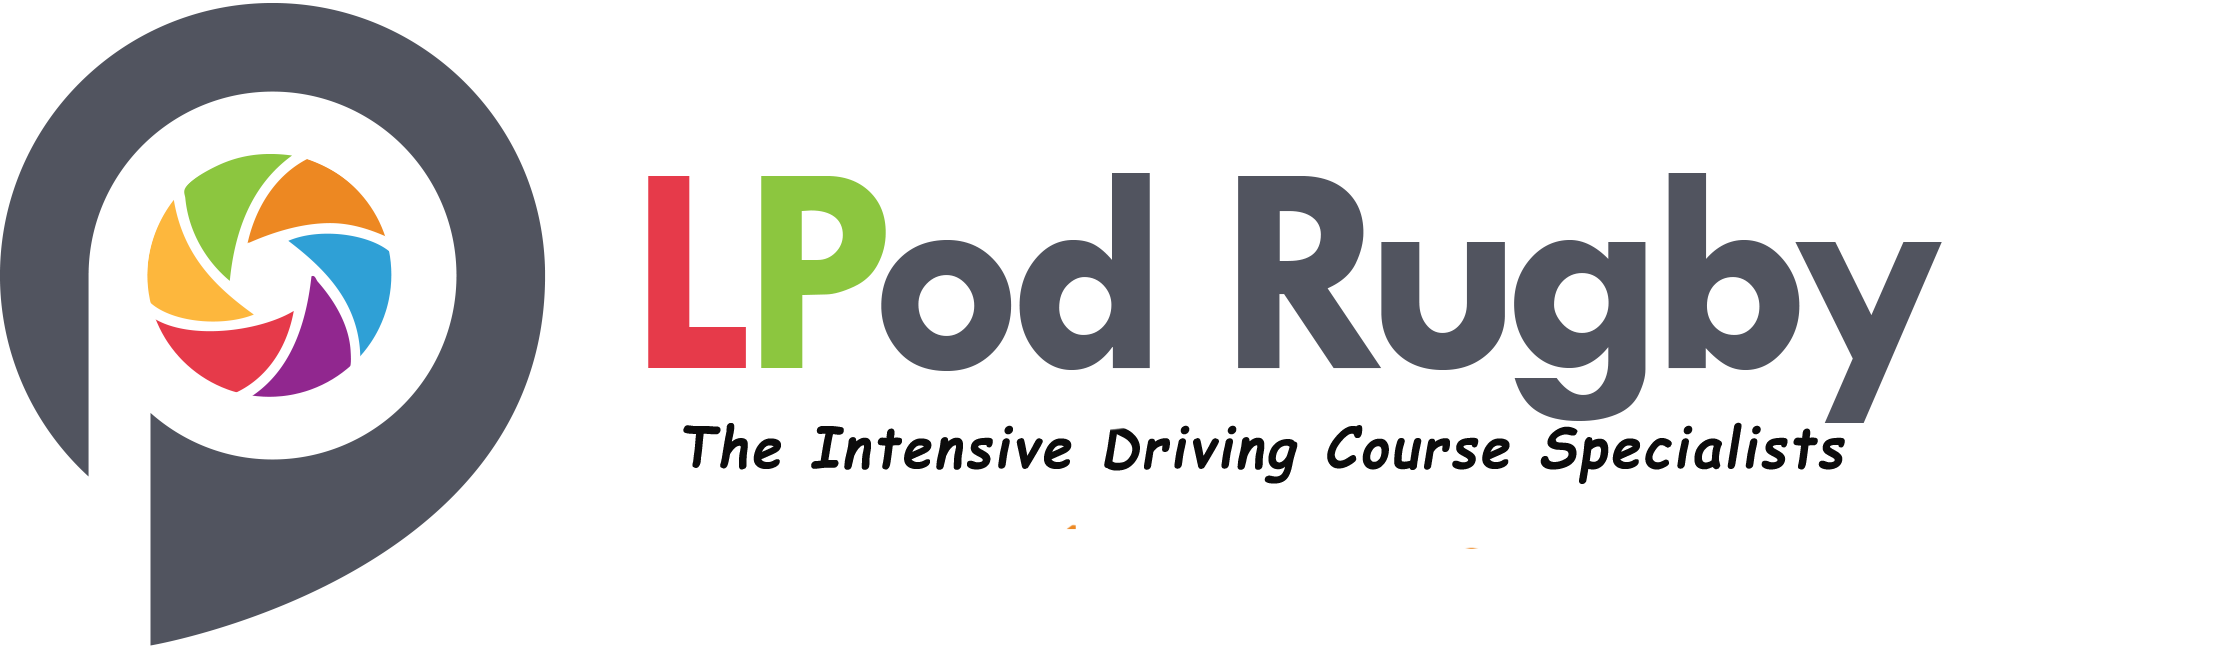 intensive driving courses in rugby